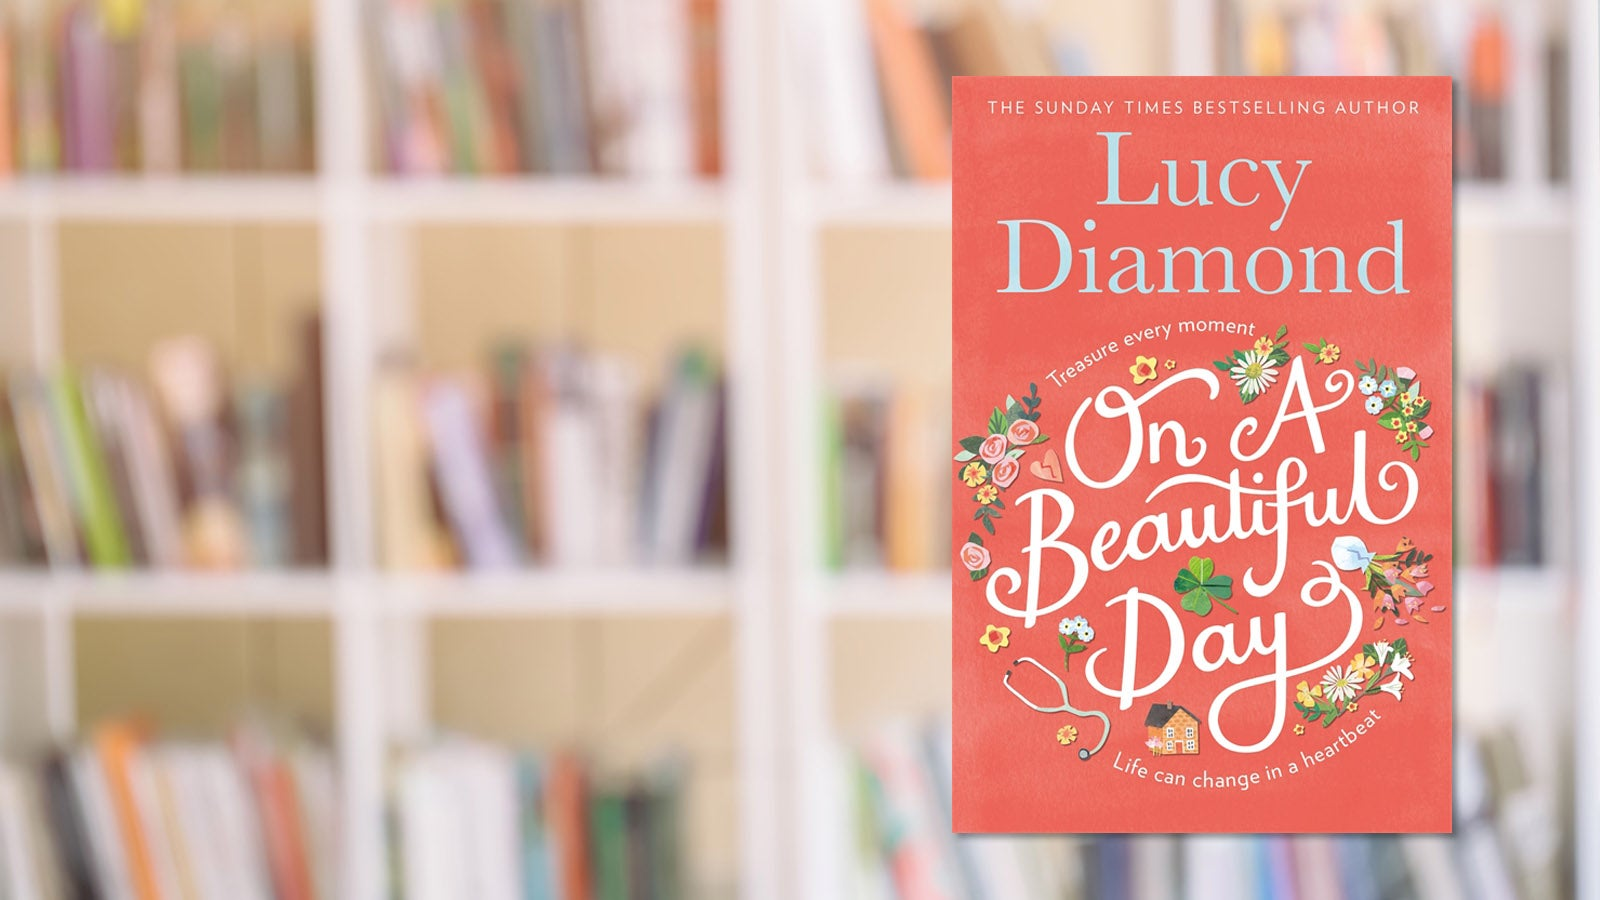 Lucy Diamond's On A Beautiful Day against a backdrop of a bookshelf.